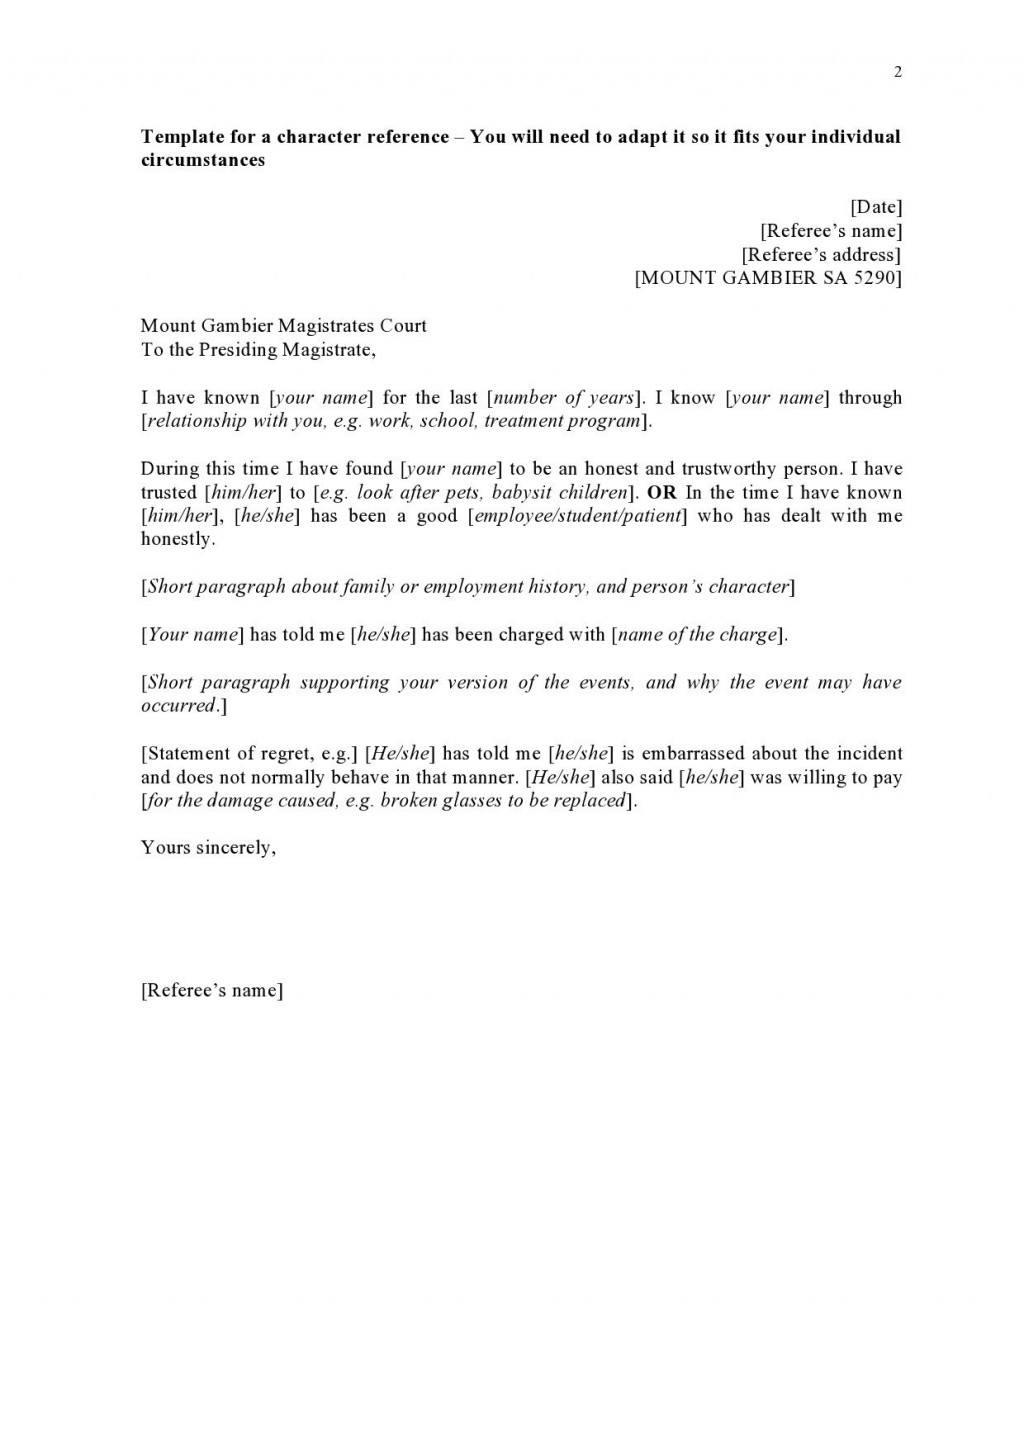 003 Remarkable Personal Reference Letter Template Picture  Character Word For Rental ApplicationLarge